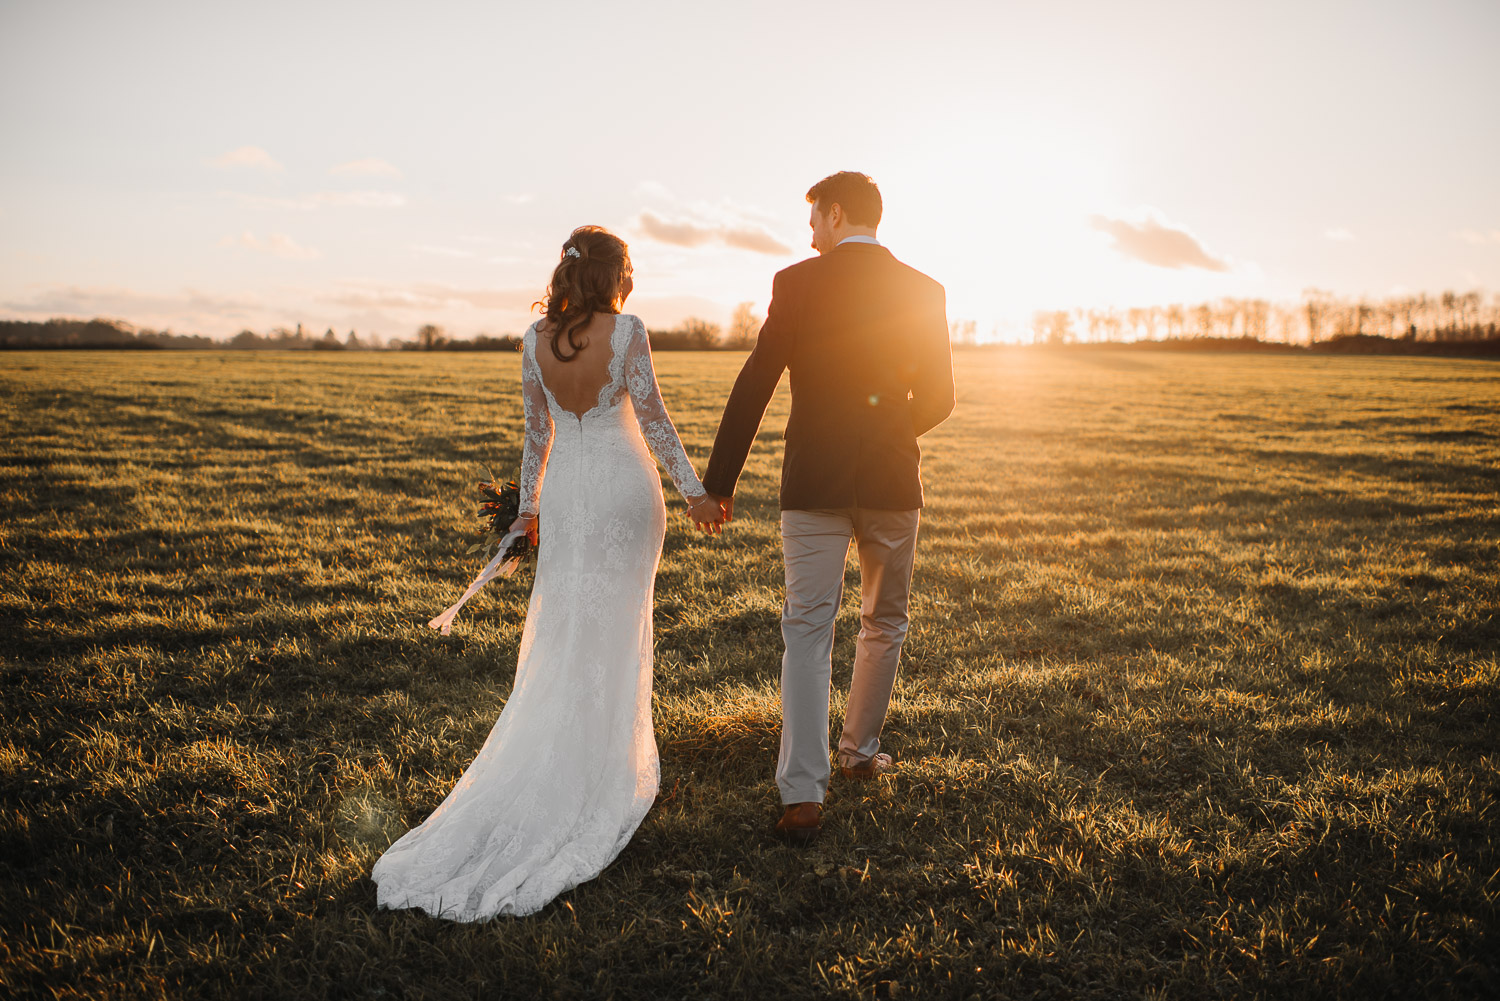 sunset walk and brides backless dress by creative and alternative london wedding photographer the shannons photography